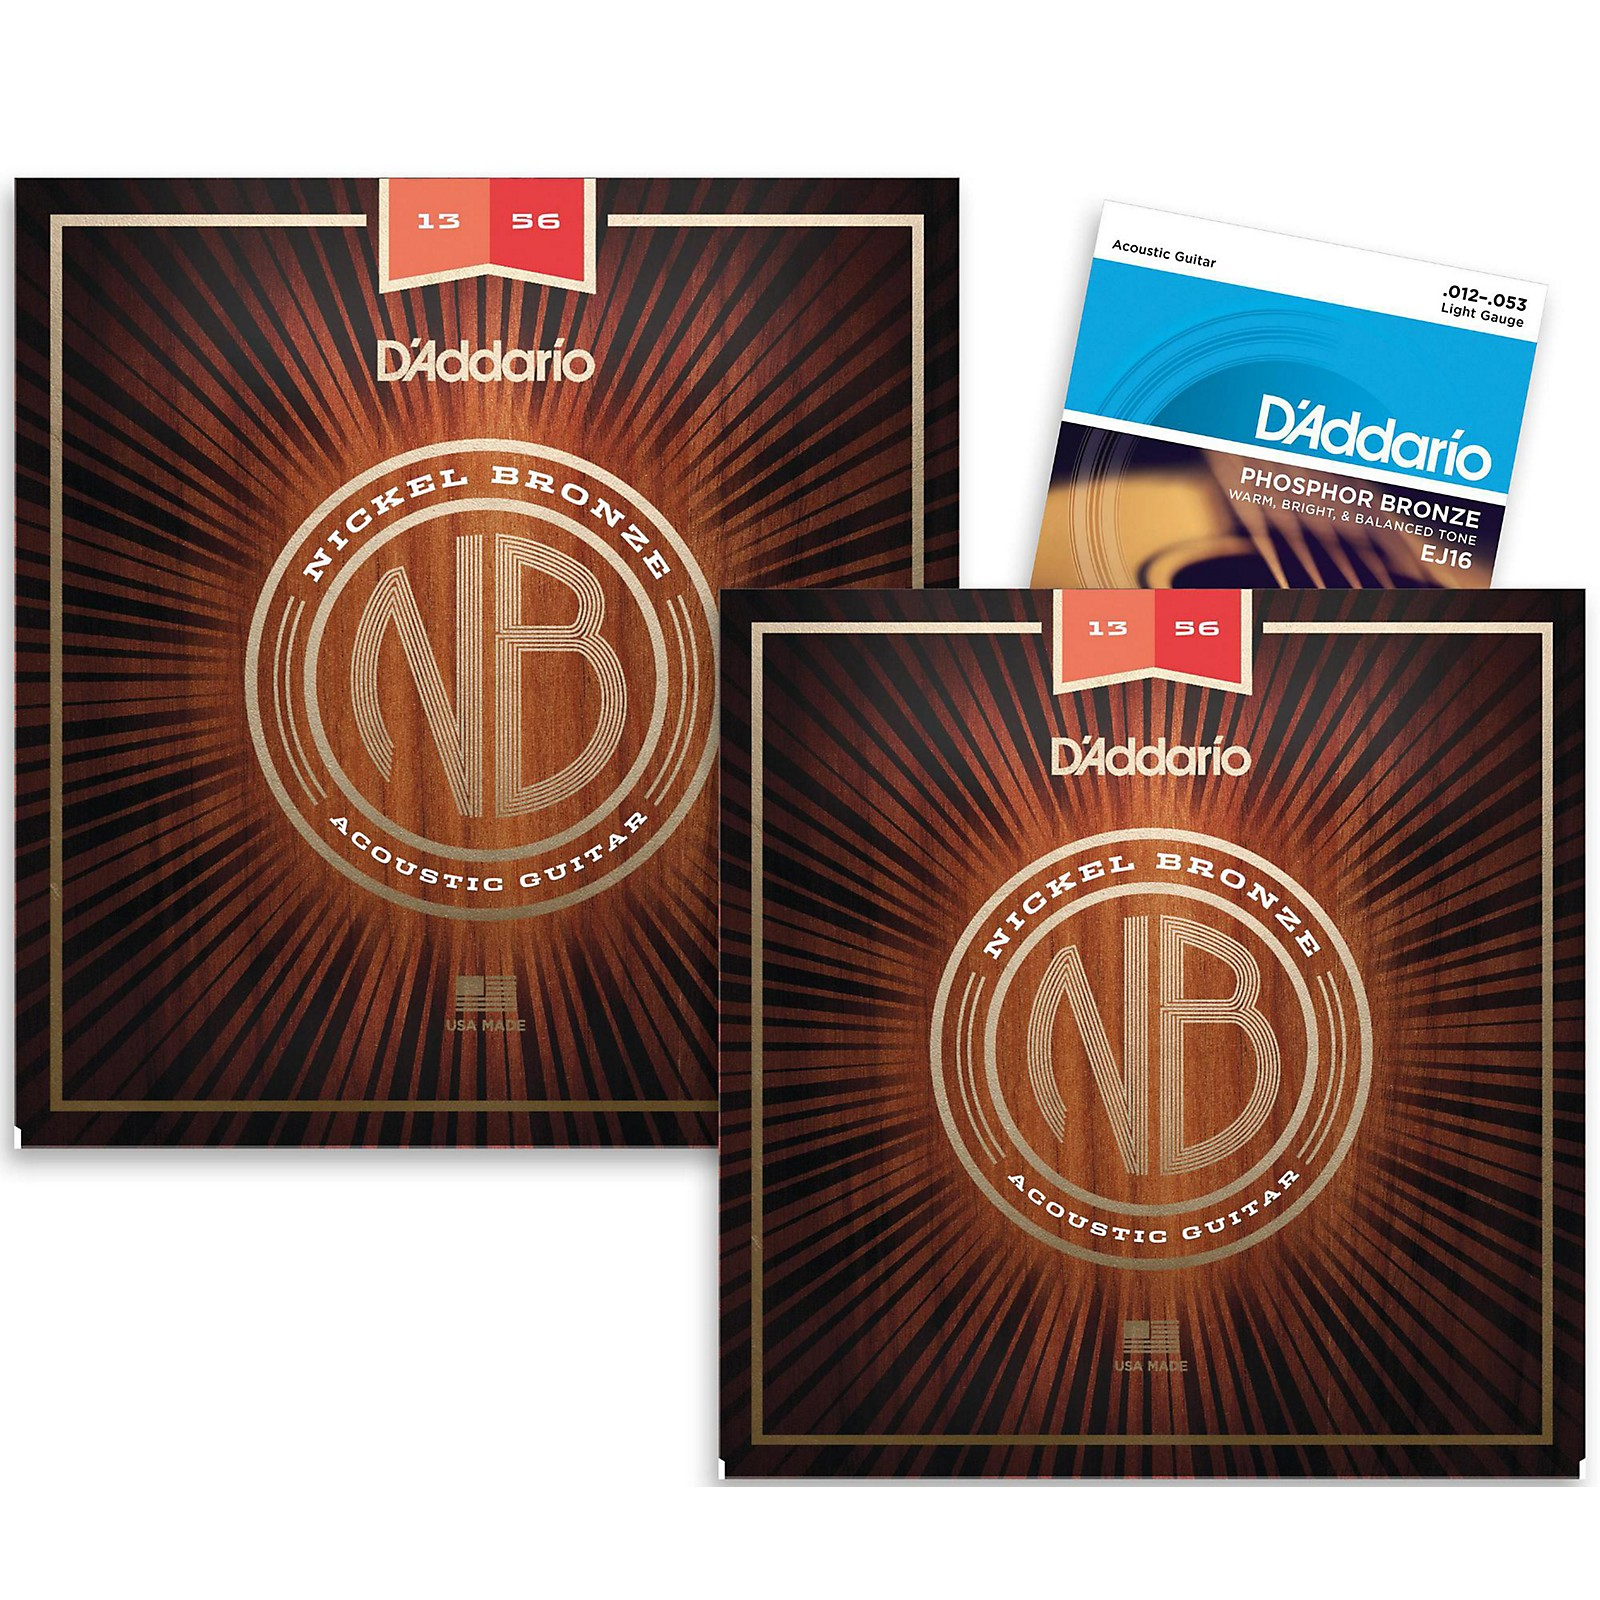 D'Addario NB1356 Nickel Bronze Medium Acoustic Strings 2-Pack with EJ16 Phosphor Bronze Light Single-Pack